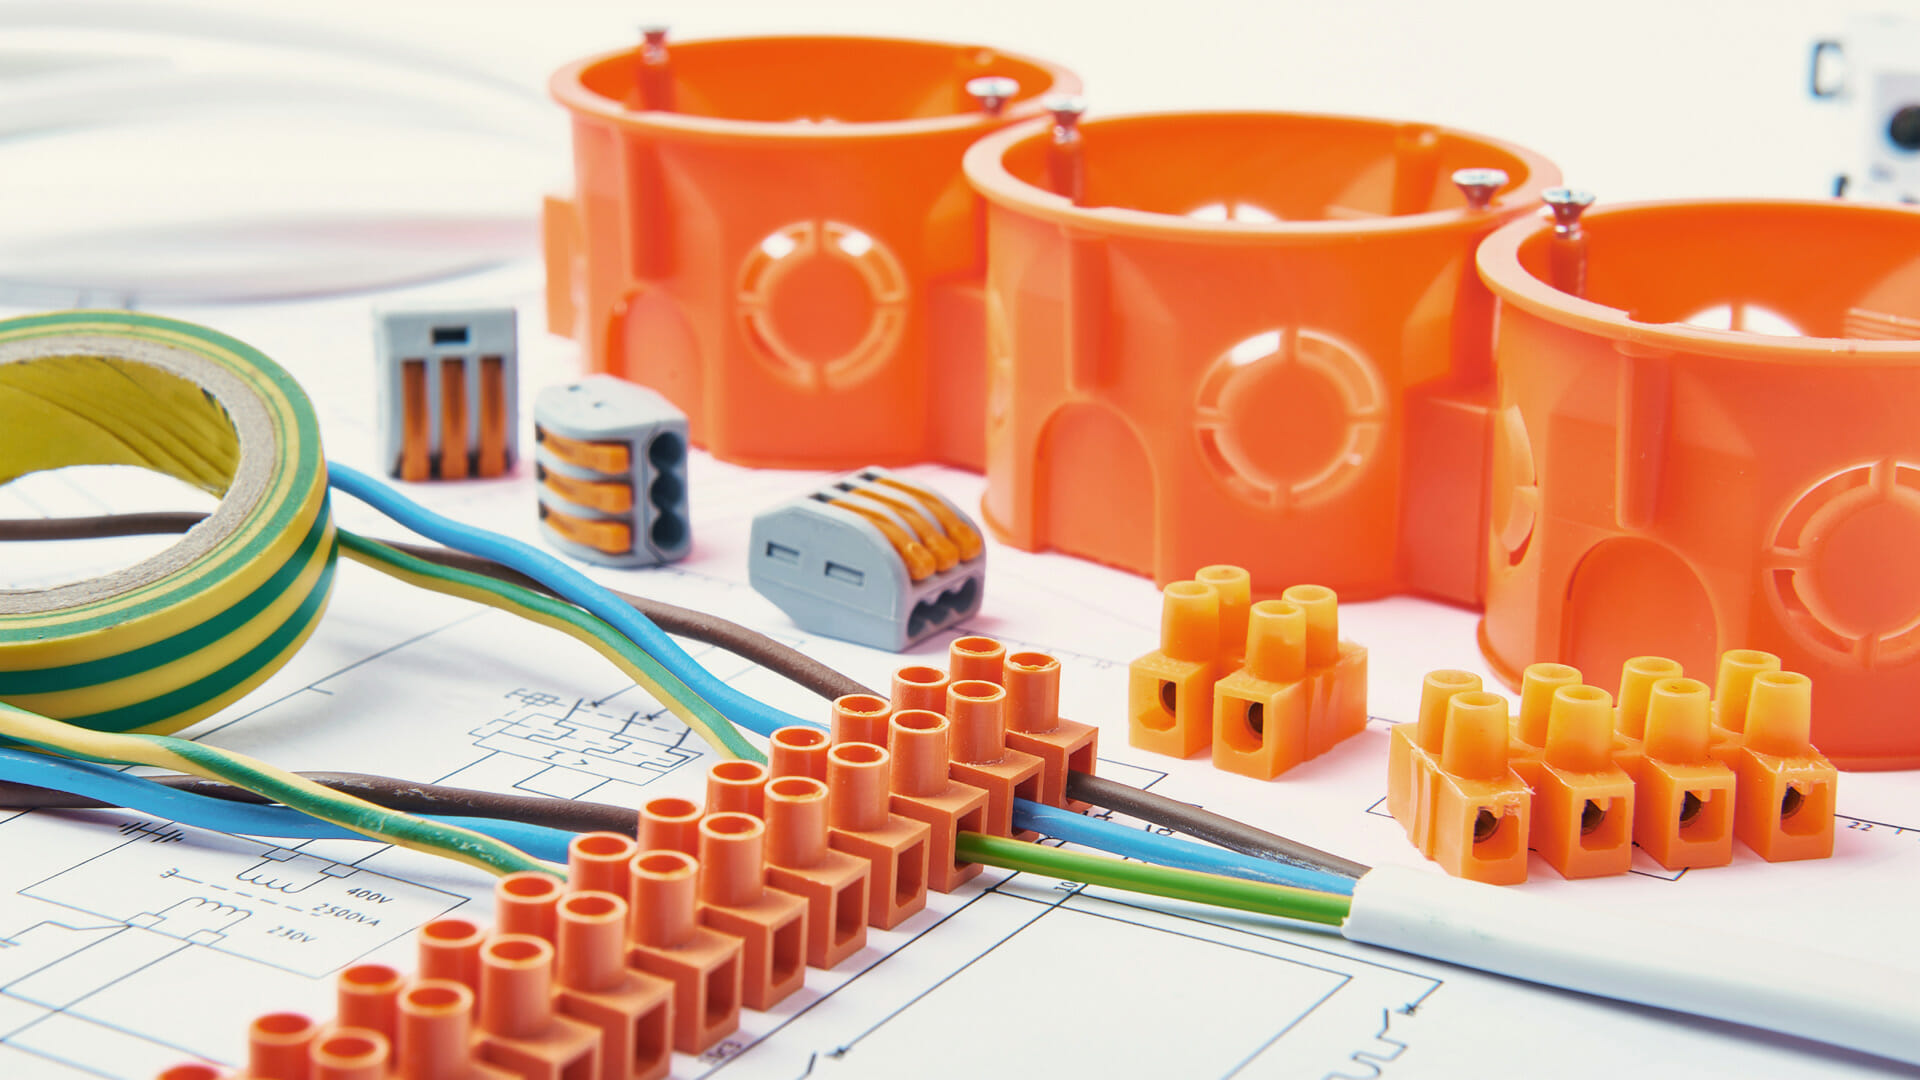 Optimize Your Retailing For Electrical Parts With Fis Wws Wiring Accessories Information The Industrial Solution And